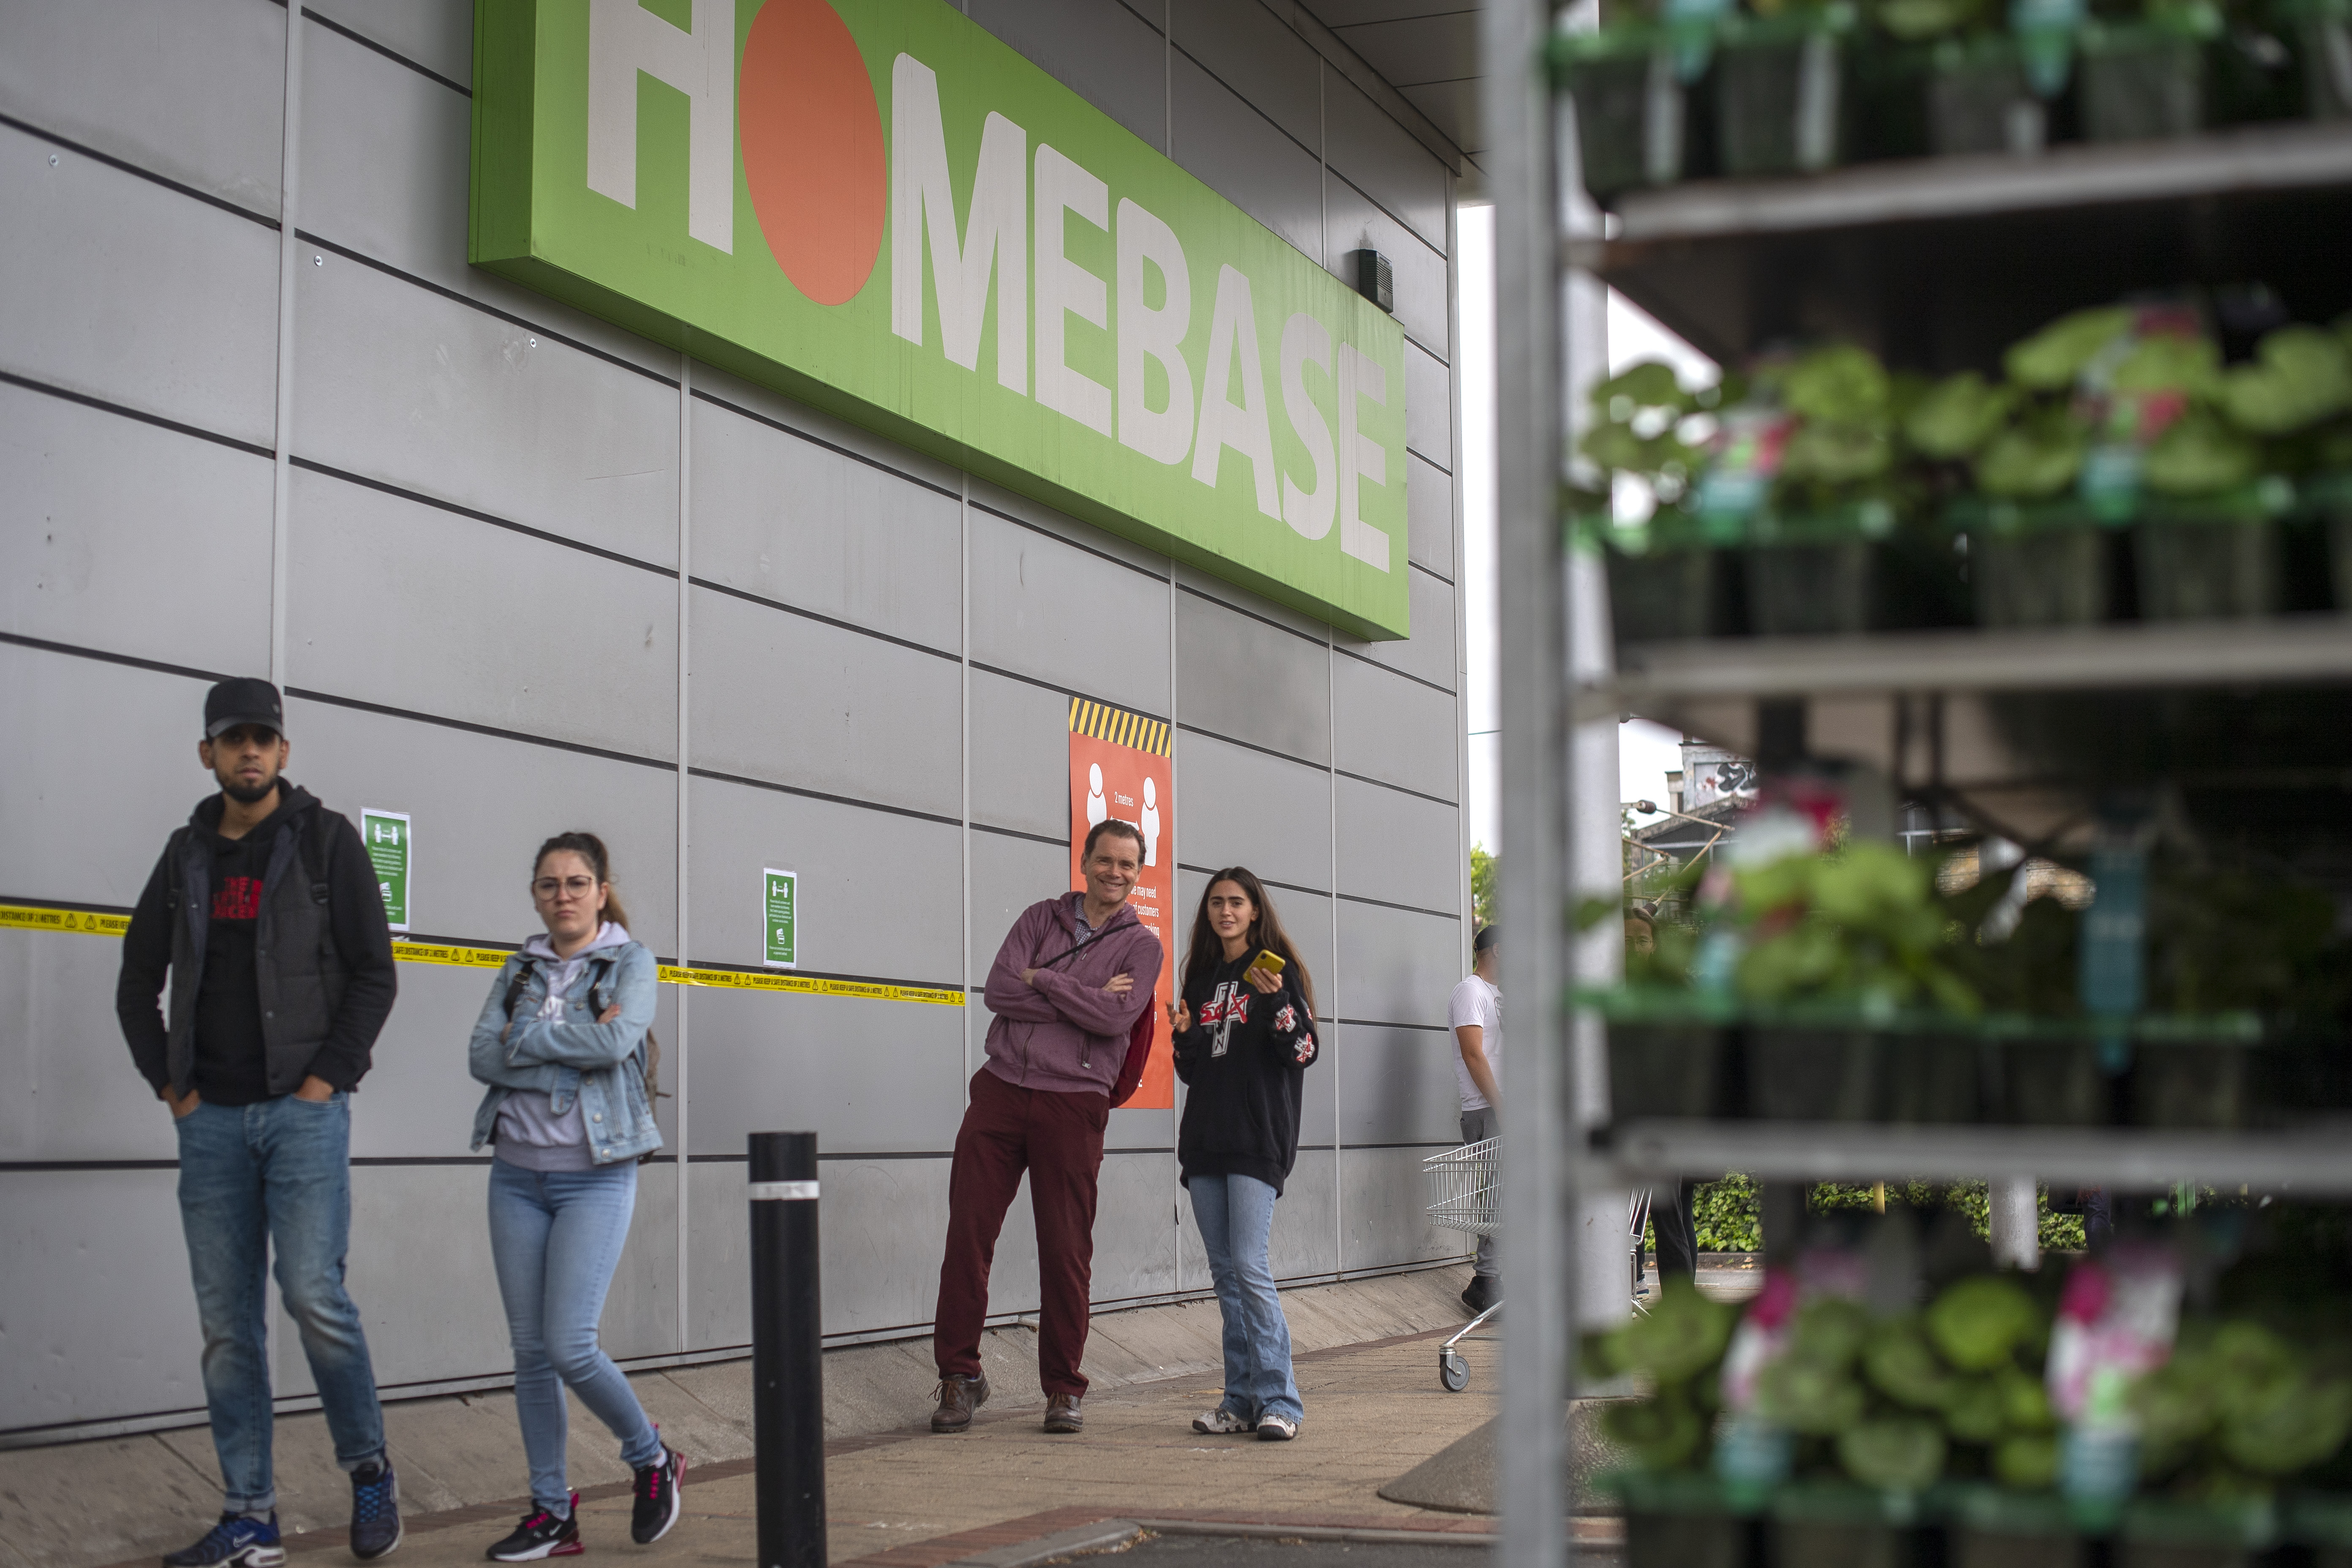 Customers maintain social distancing in a queue to enter a Homebase store in north London, as the UK continues in lockdown to help curb the spread of the coronavirus.